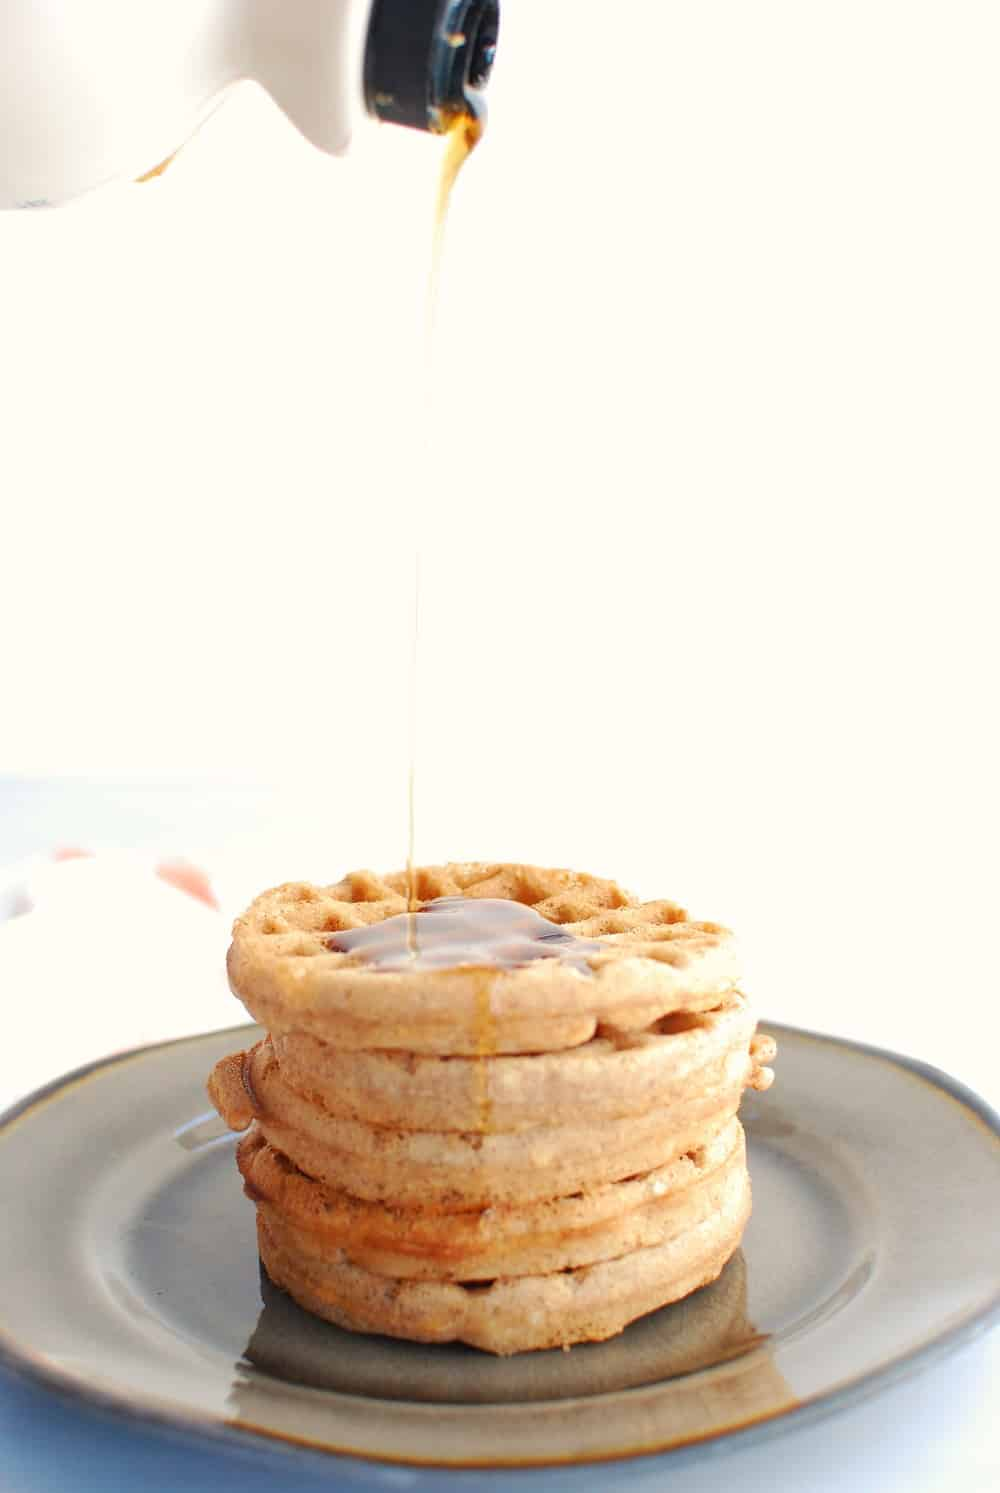 a stack of waffles with syrup being poured on top